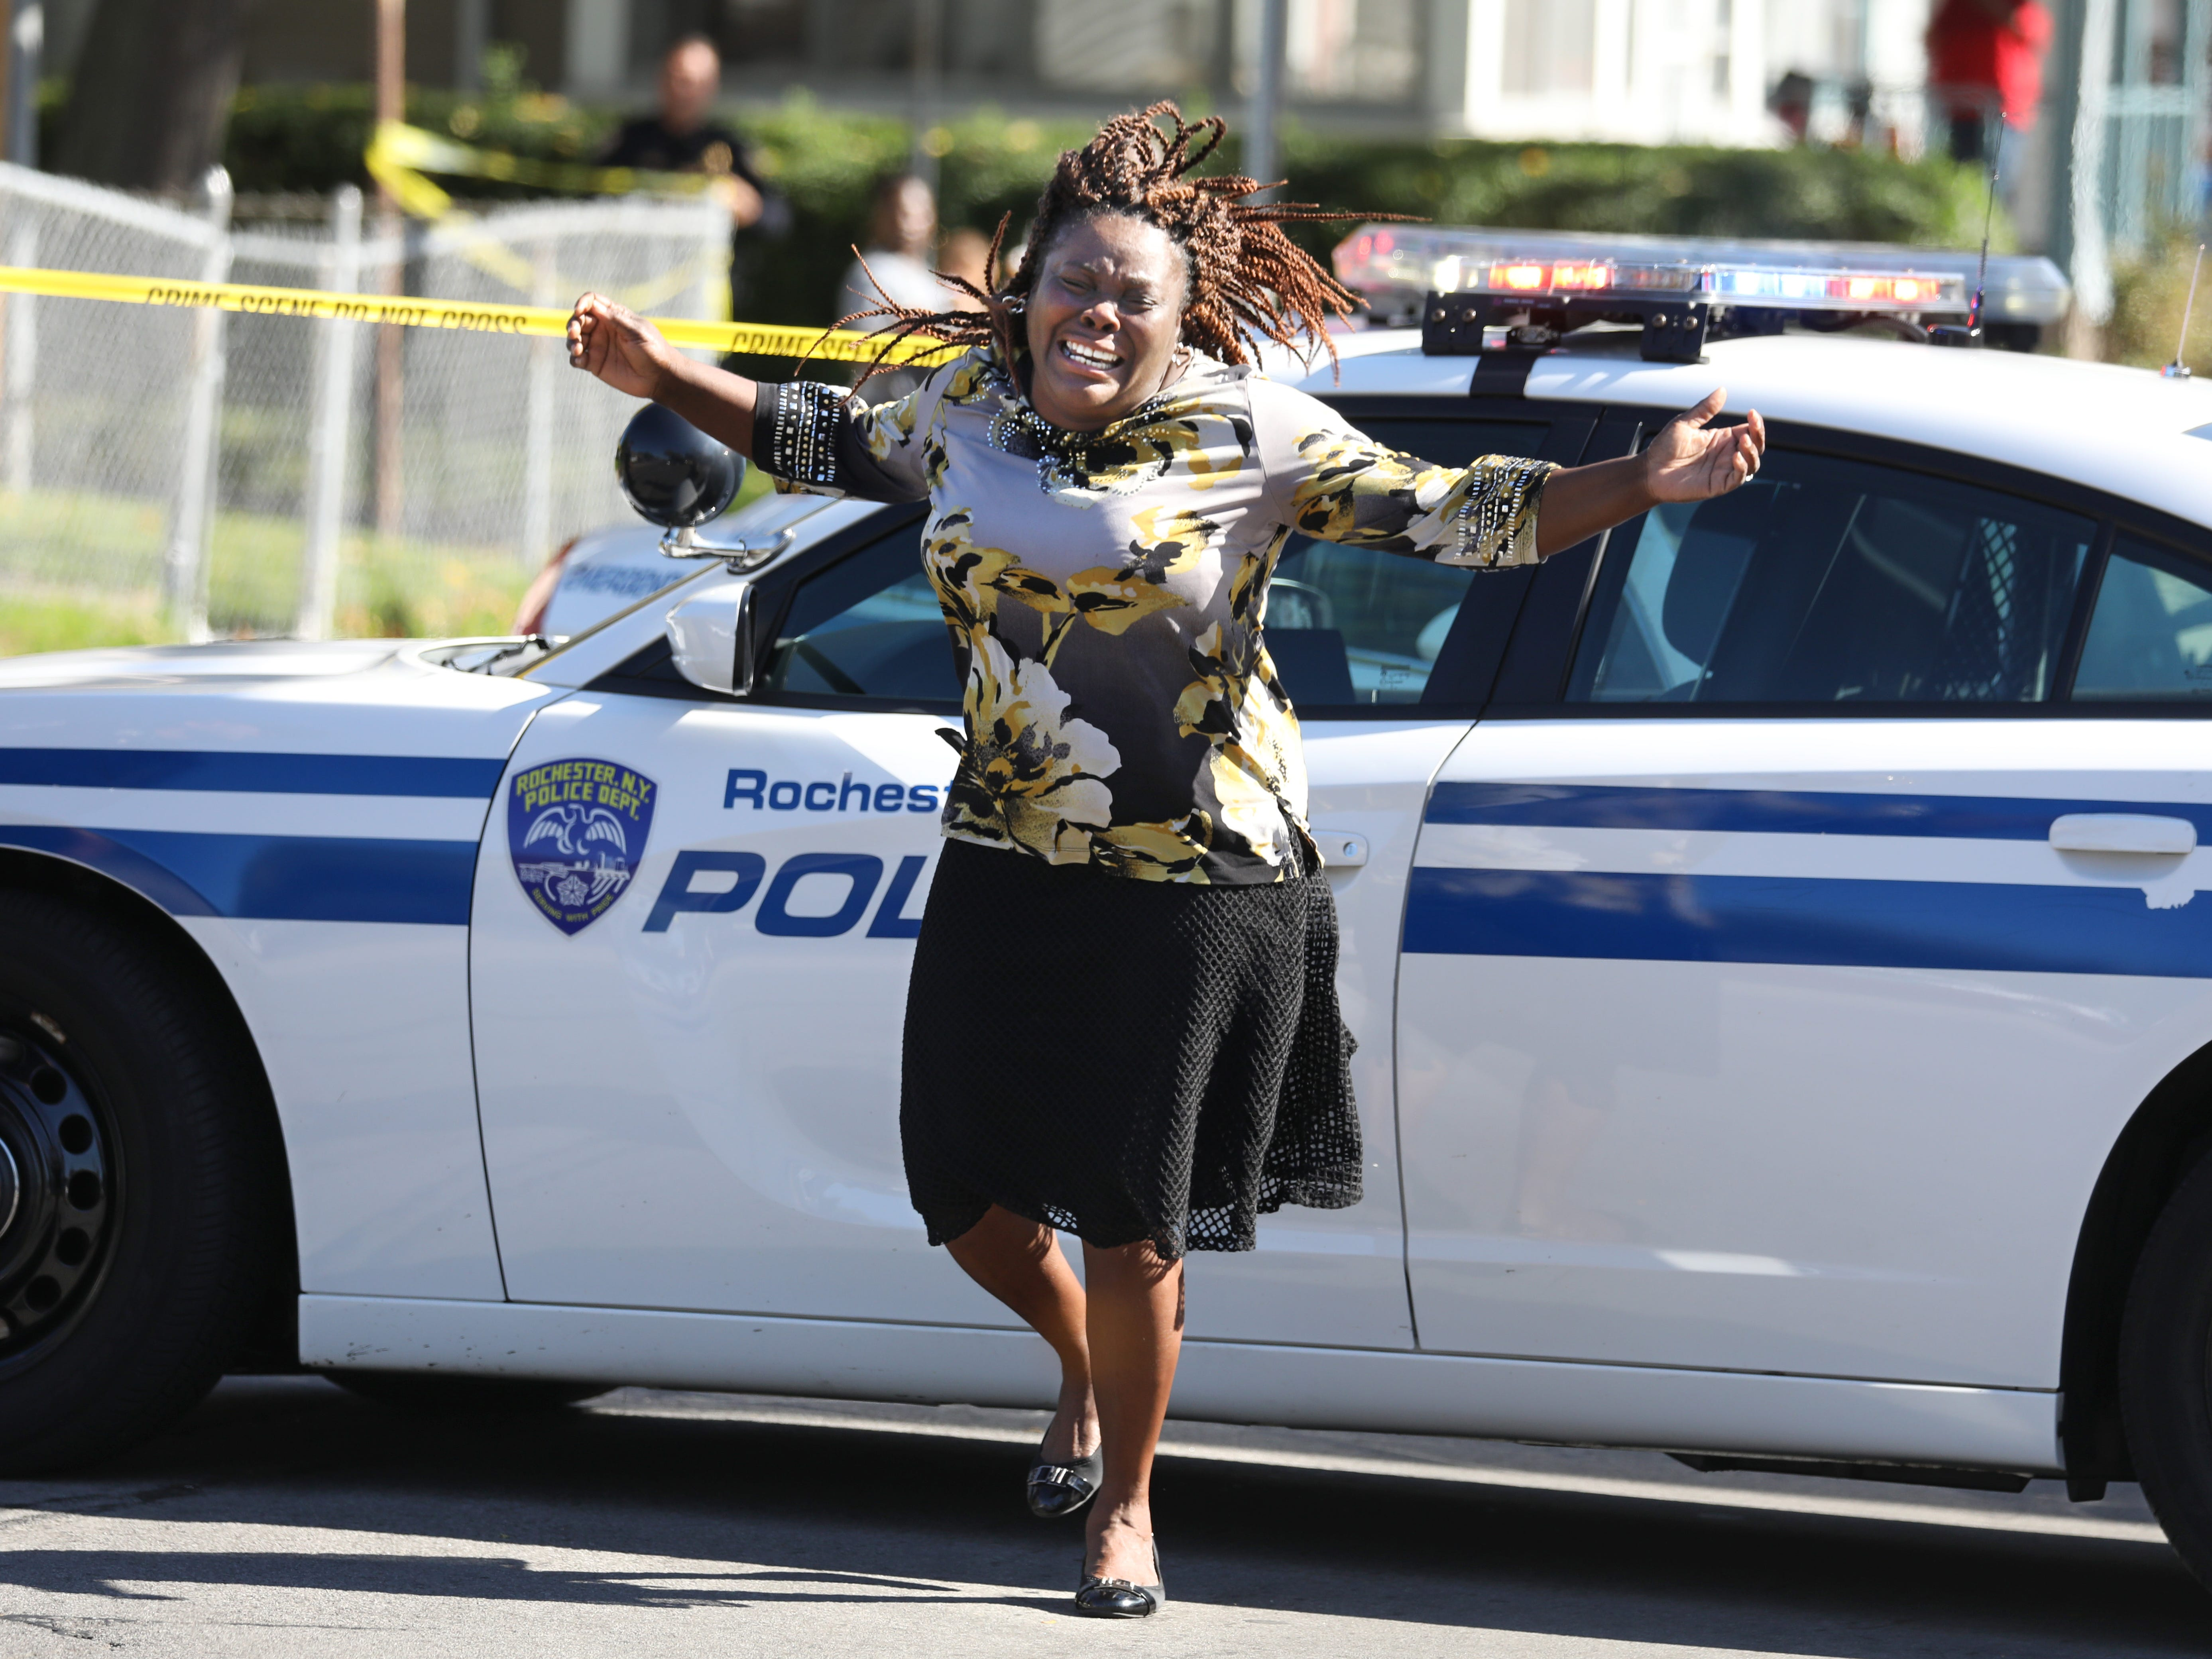 Juliet Blake-Lavan, of Rochester, the aunt of the shooting suspect, reacts at a police roadblock near the scene on Bay Street in Rochester, N.Y., Wednesday, Oct. 10, 2018. A man fatally shot a woman with whom he had a relationship and wounded his own son and a second man Wednesday, then was killed by police in a shootout during a vehicle chase through a Rochester neighborhood.